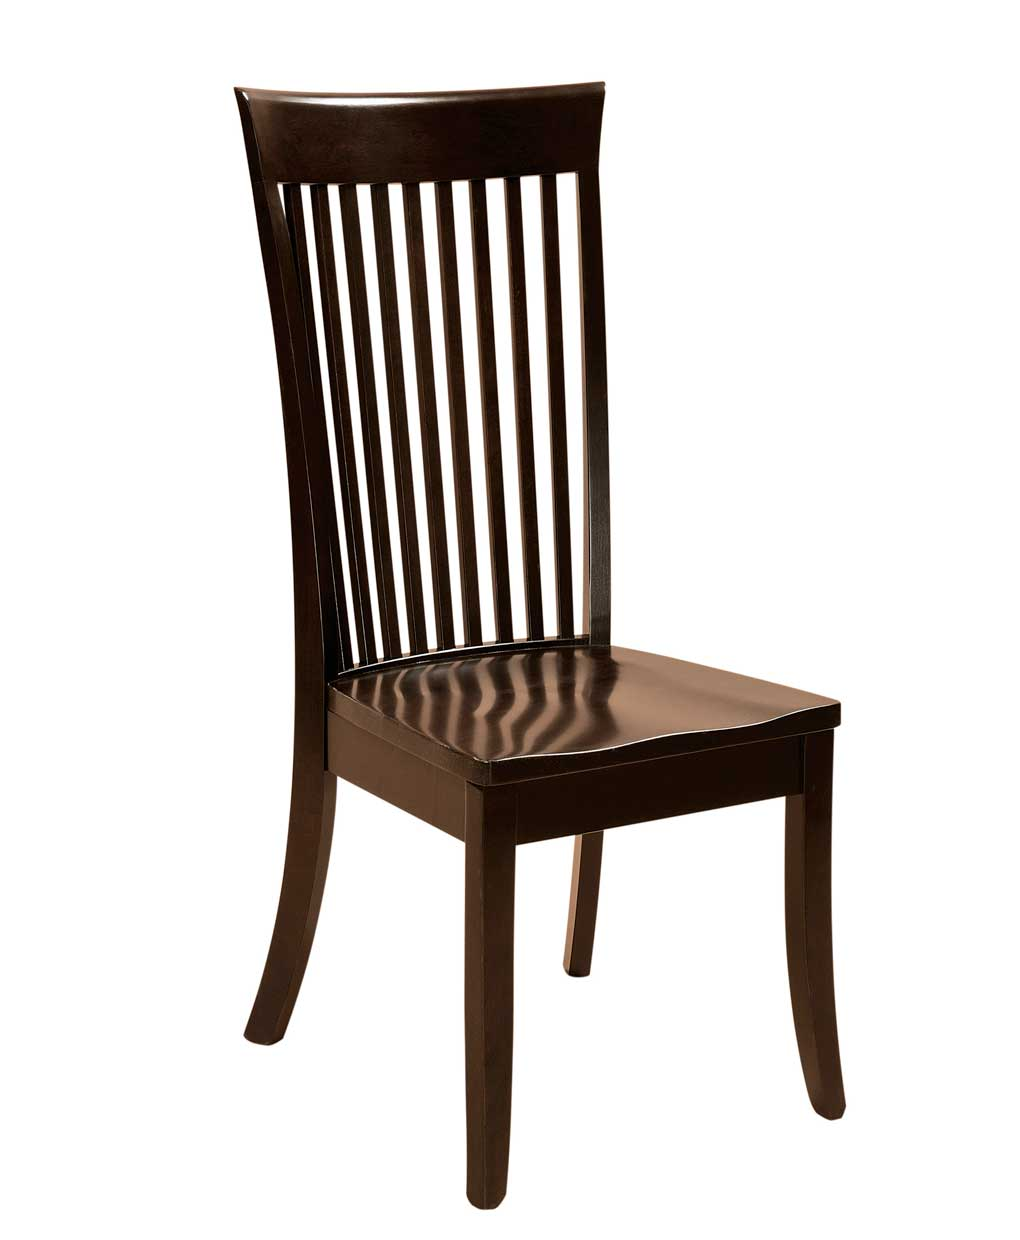 Carlisle Shaker Dining Chairs Amish Direct Furniture : CarlisleDiningChair from amishdirectfurniture.com size 1020 x 1240 jpeg 43kB